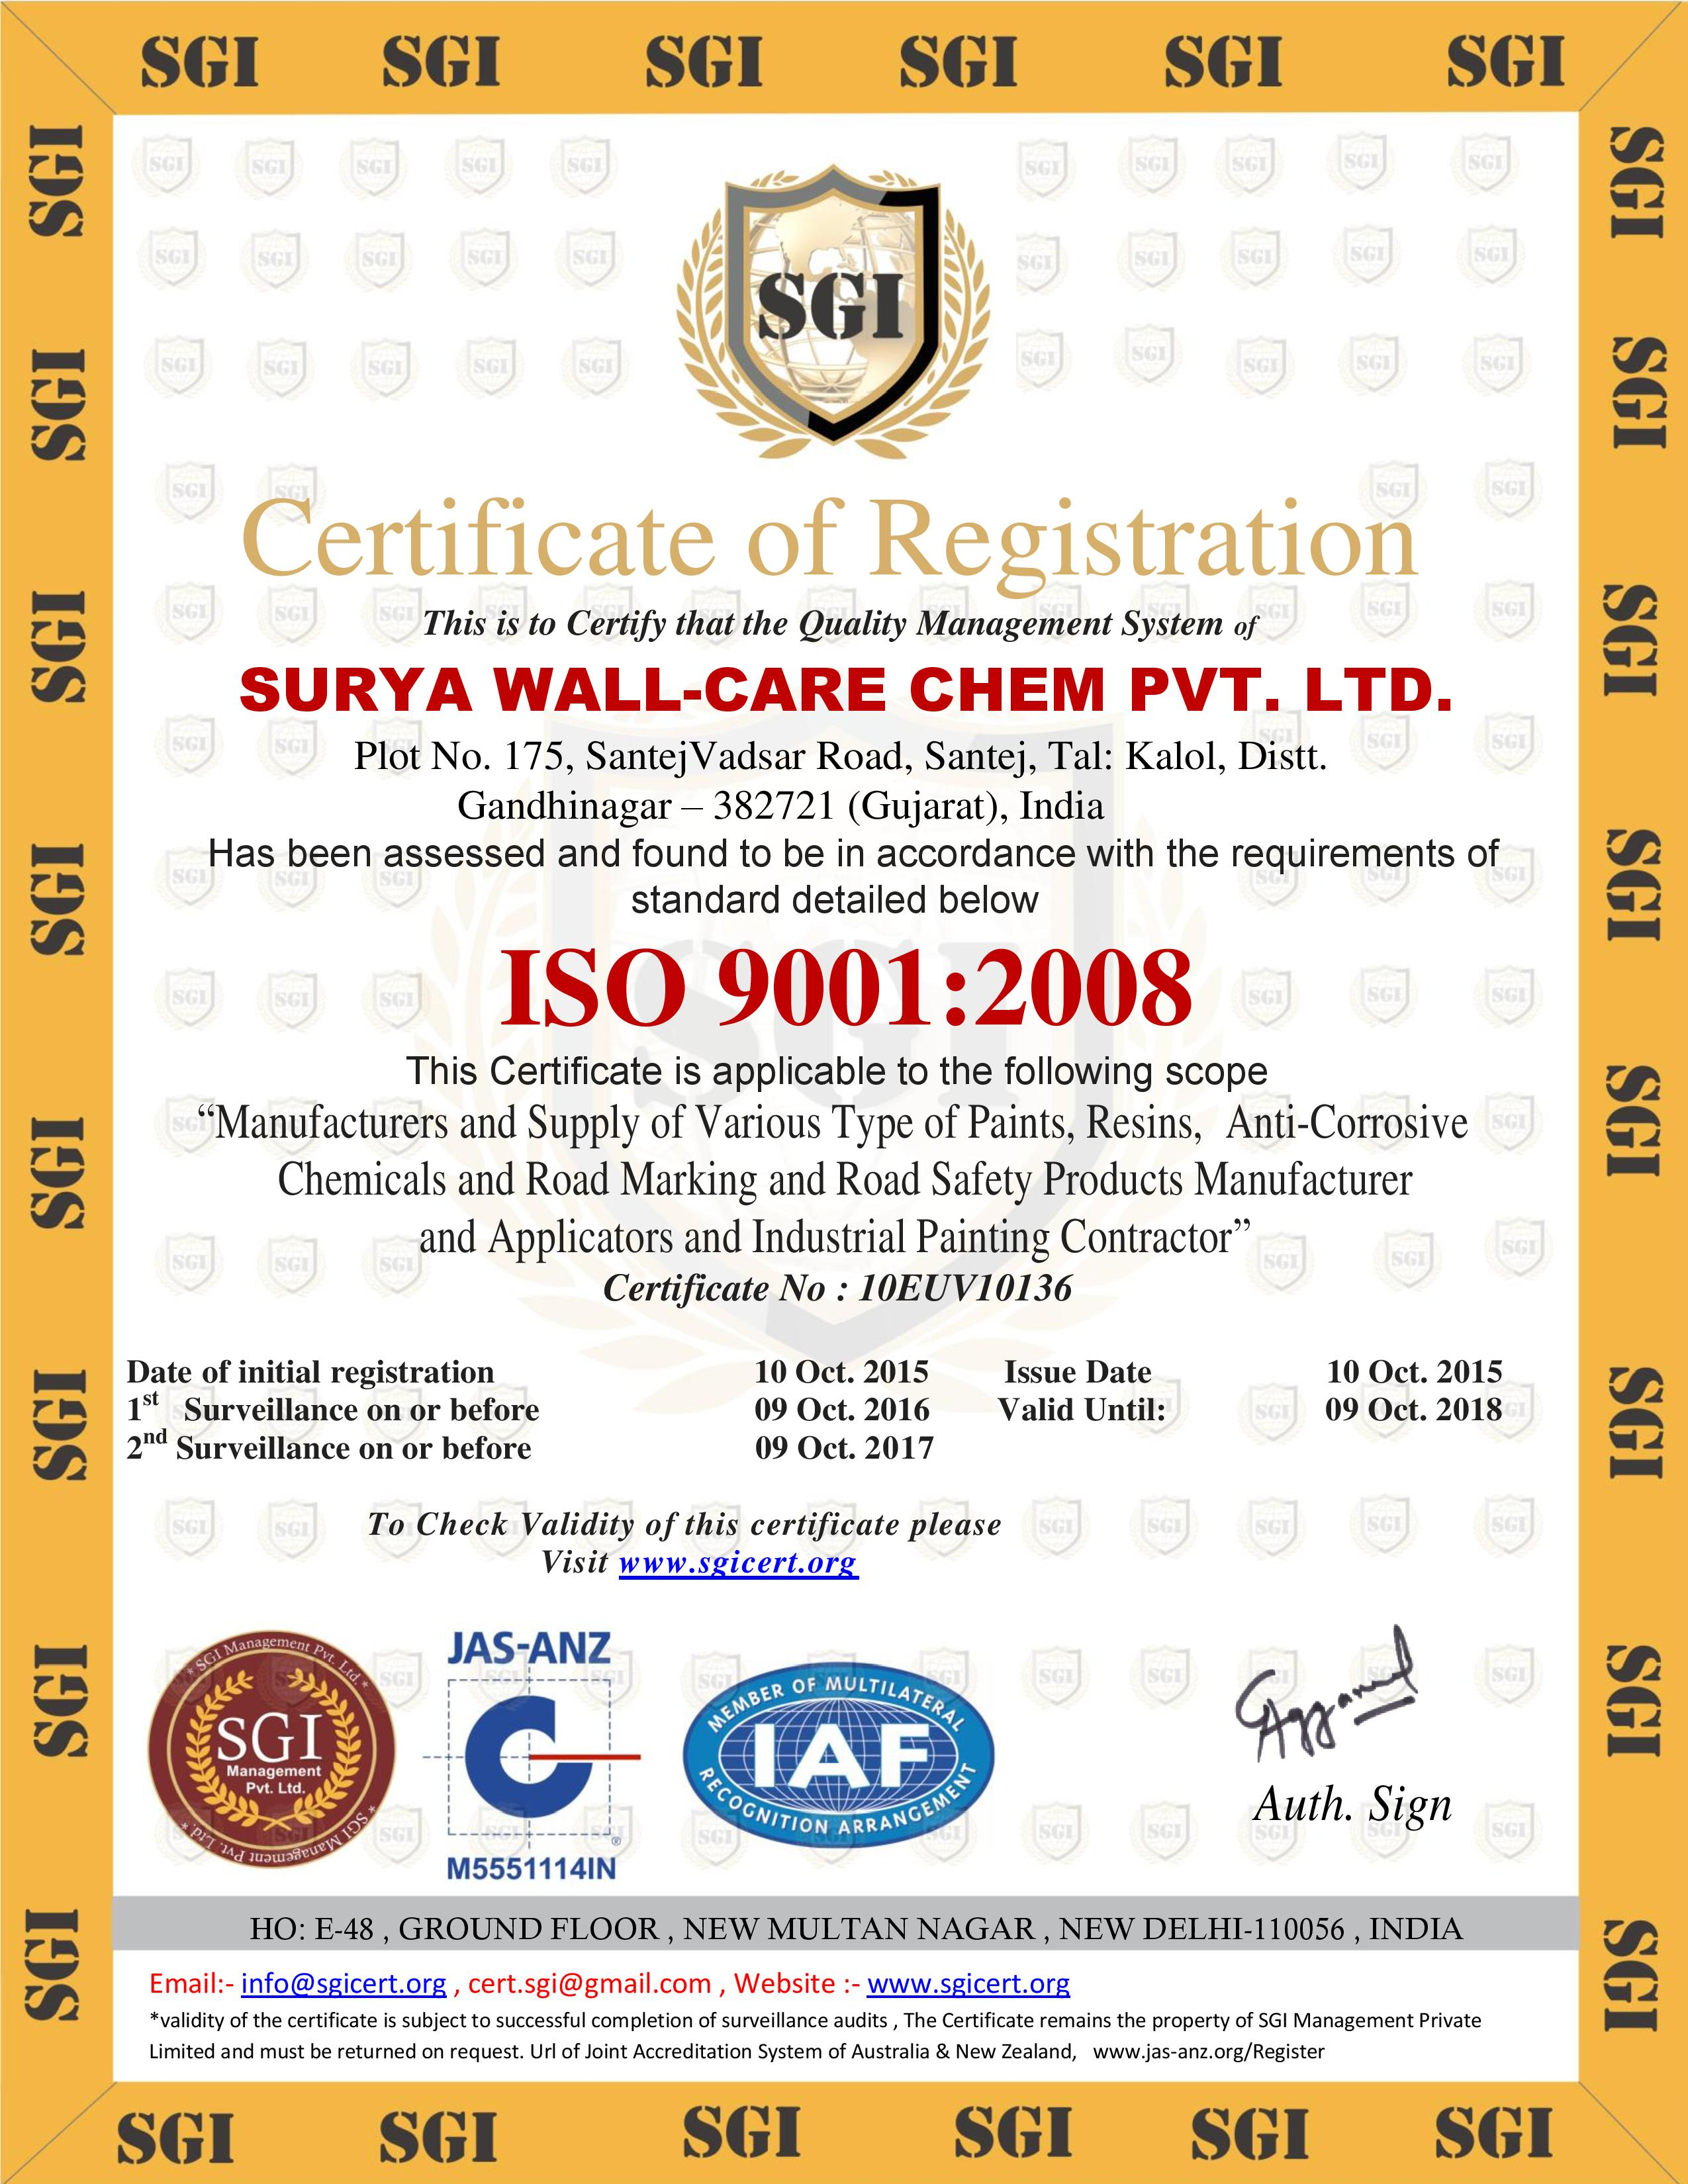 About Quality of Surya Wall Care Products